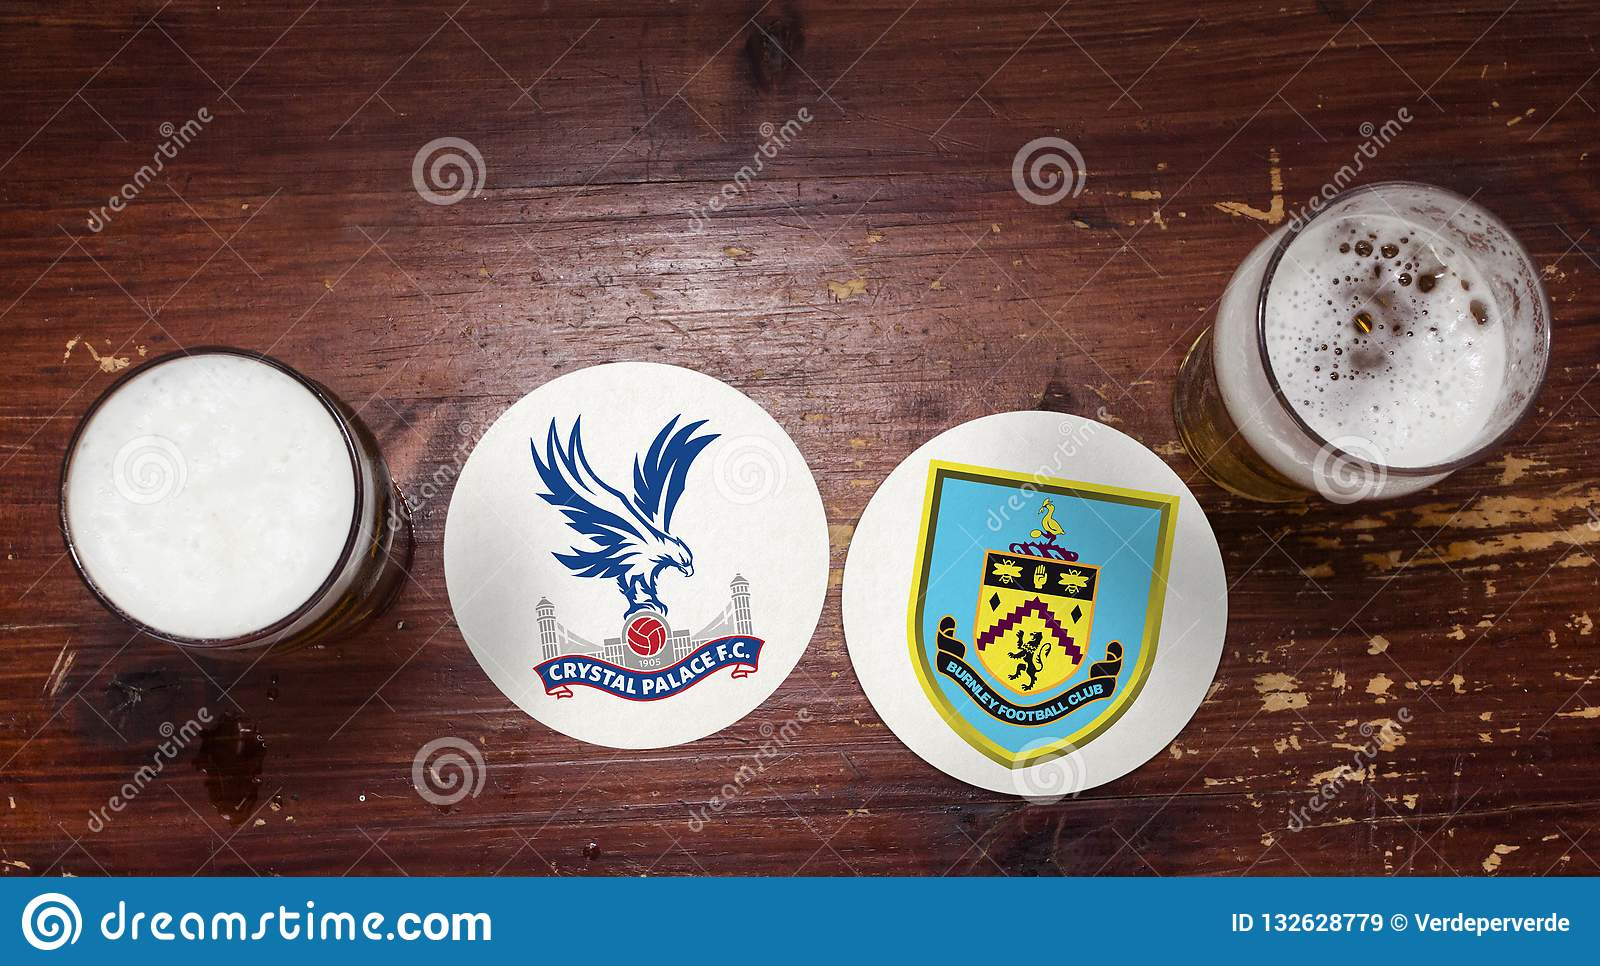 crystal palace vs burnley - photo #33